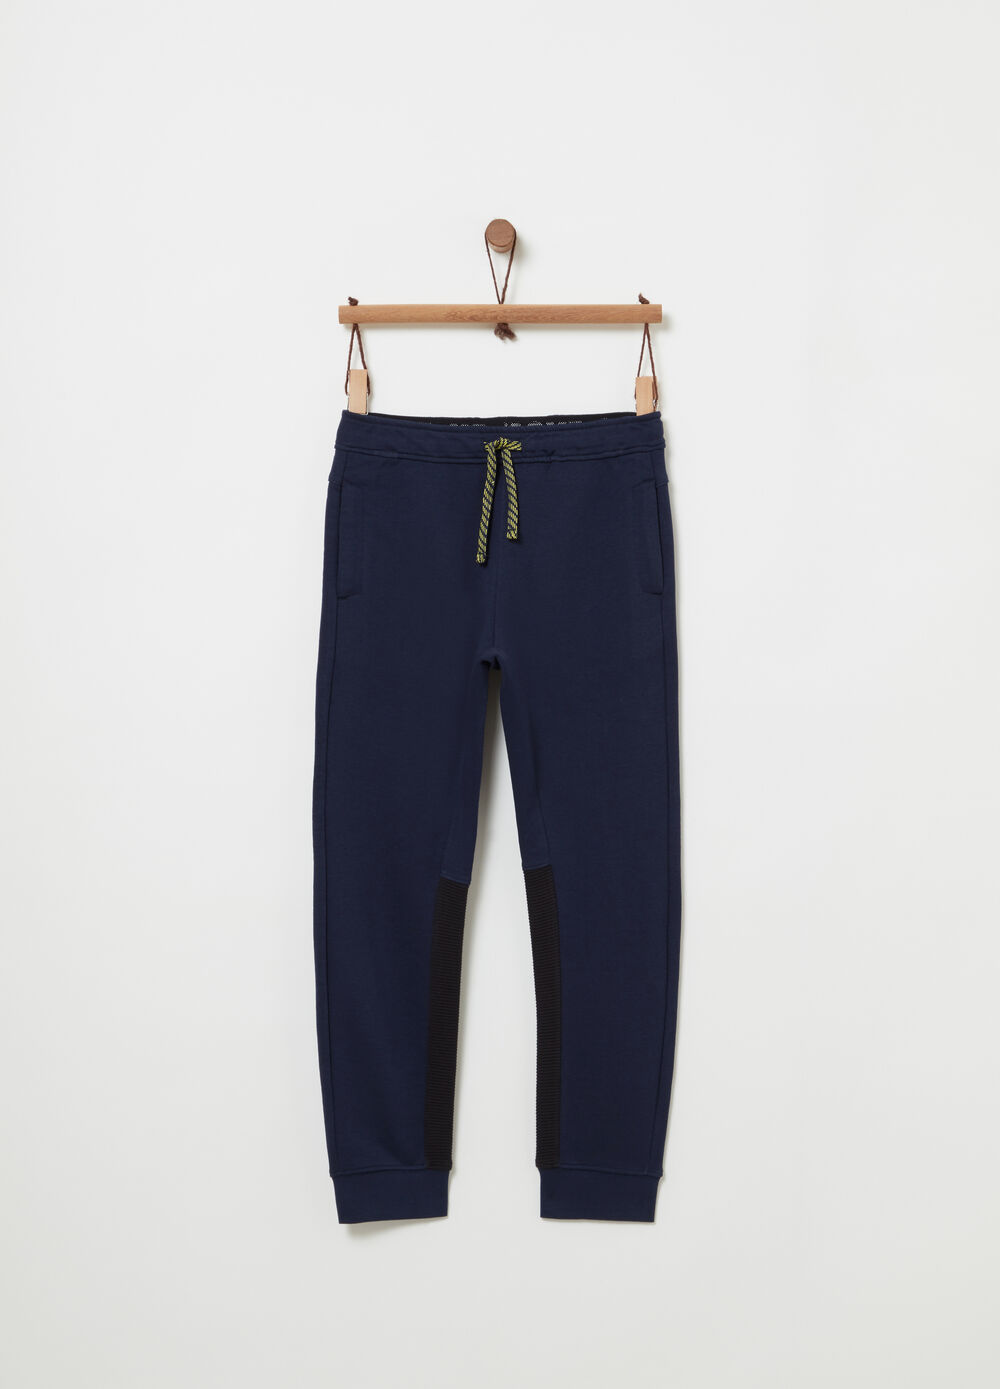 French Terry trousers with rubber label